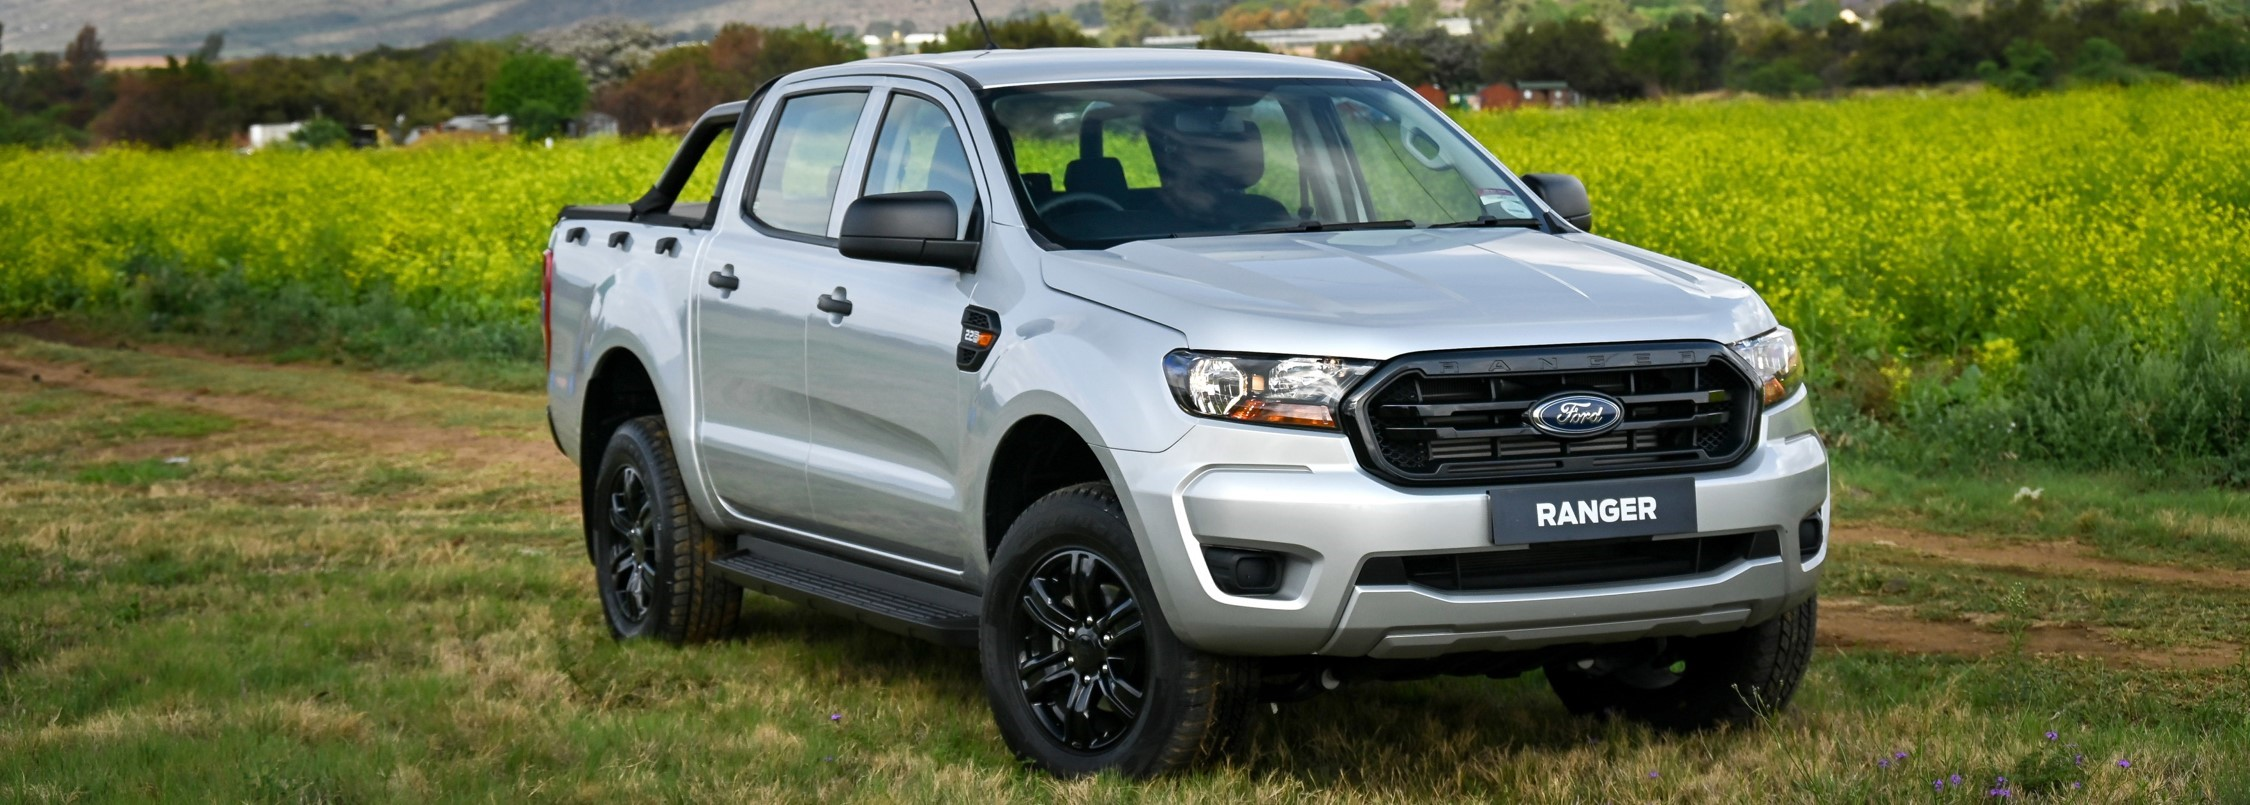 Sport Pack option now available for Ford Ranger XL